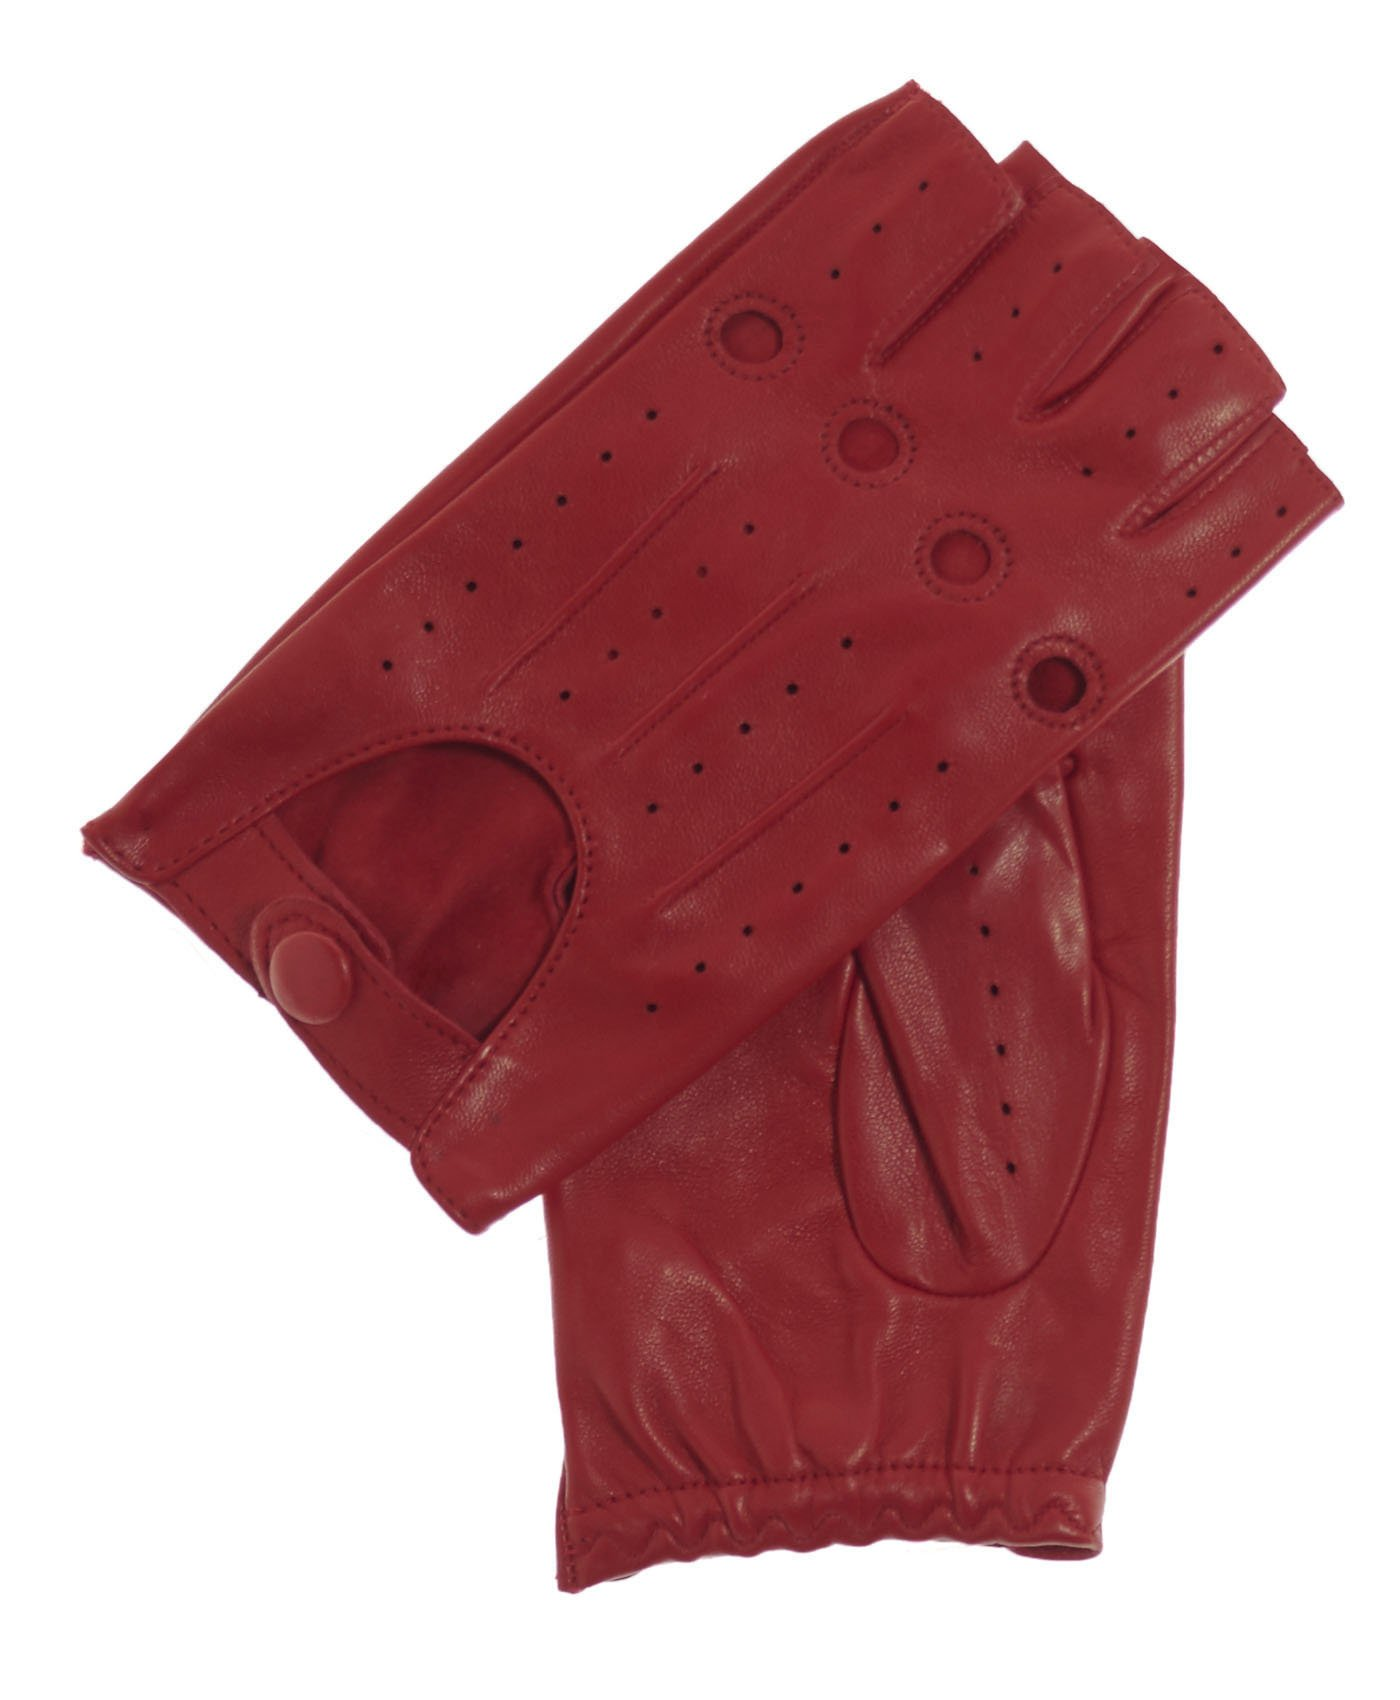 Fratelli Orsini Everyday Women's 1/2 Finger Leather Driving Gloves Size 7 1/2 Color Red